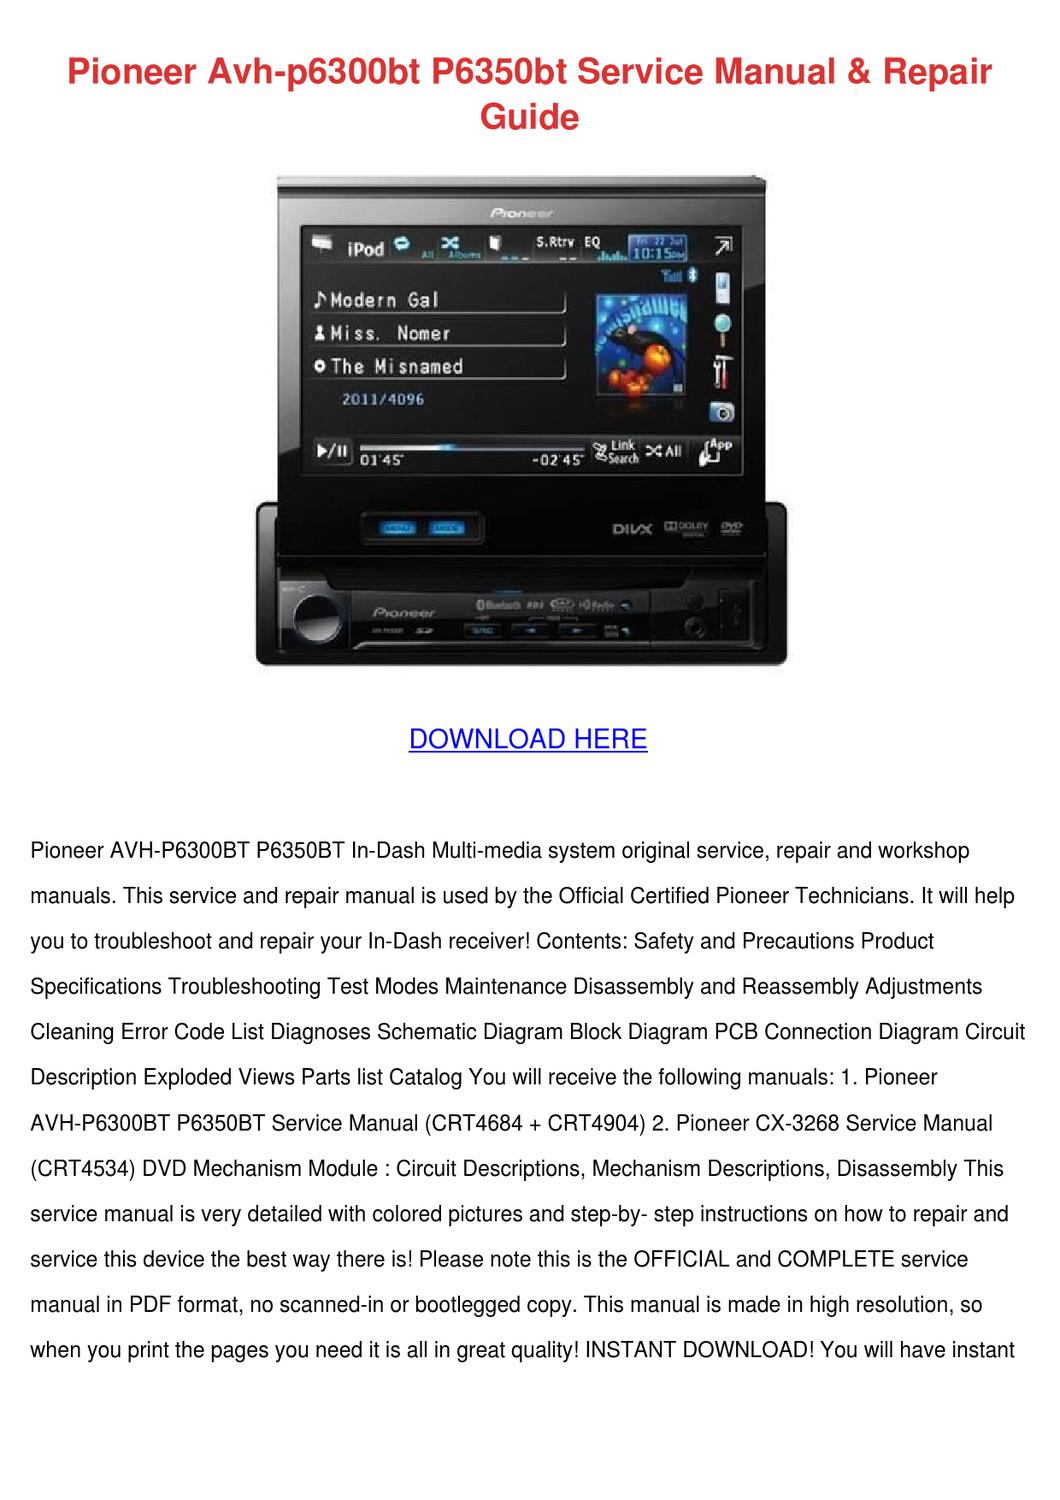 pioneer avh p6300bt p6350bt service manual re by hassanfritz - issuu  issuu